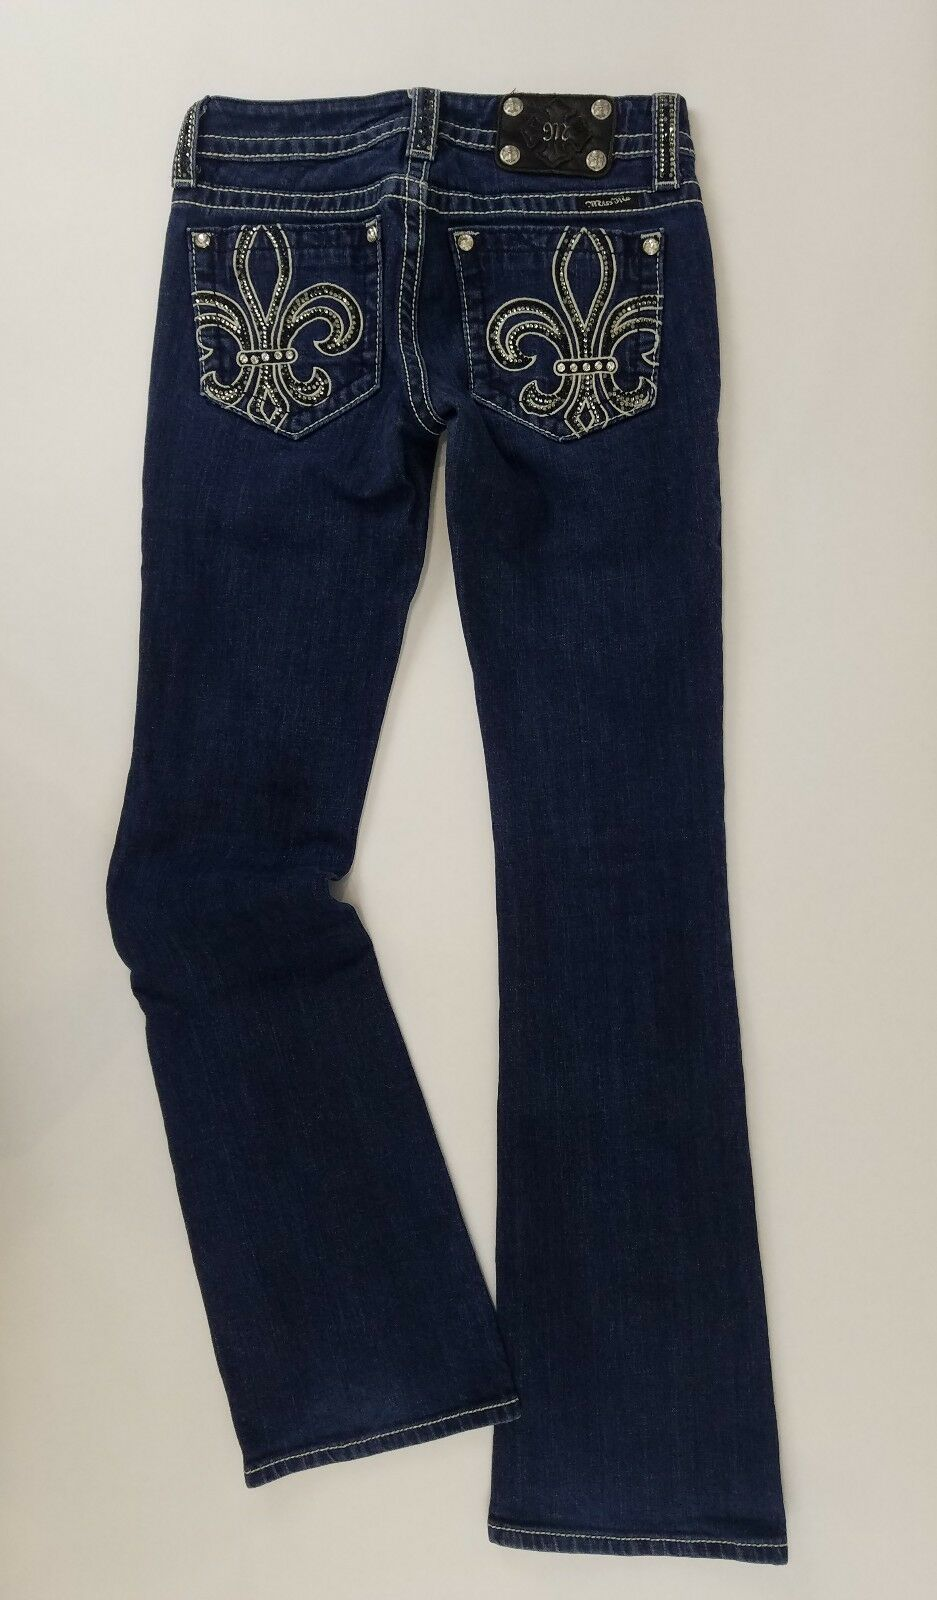 MISS ME Jeans 27 x 33 bootcut